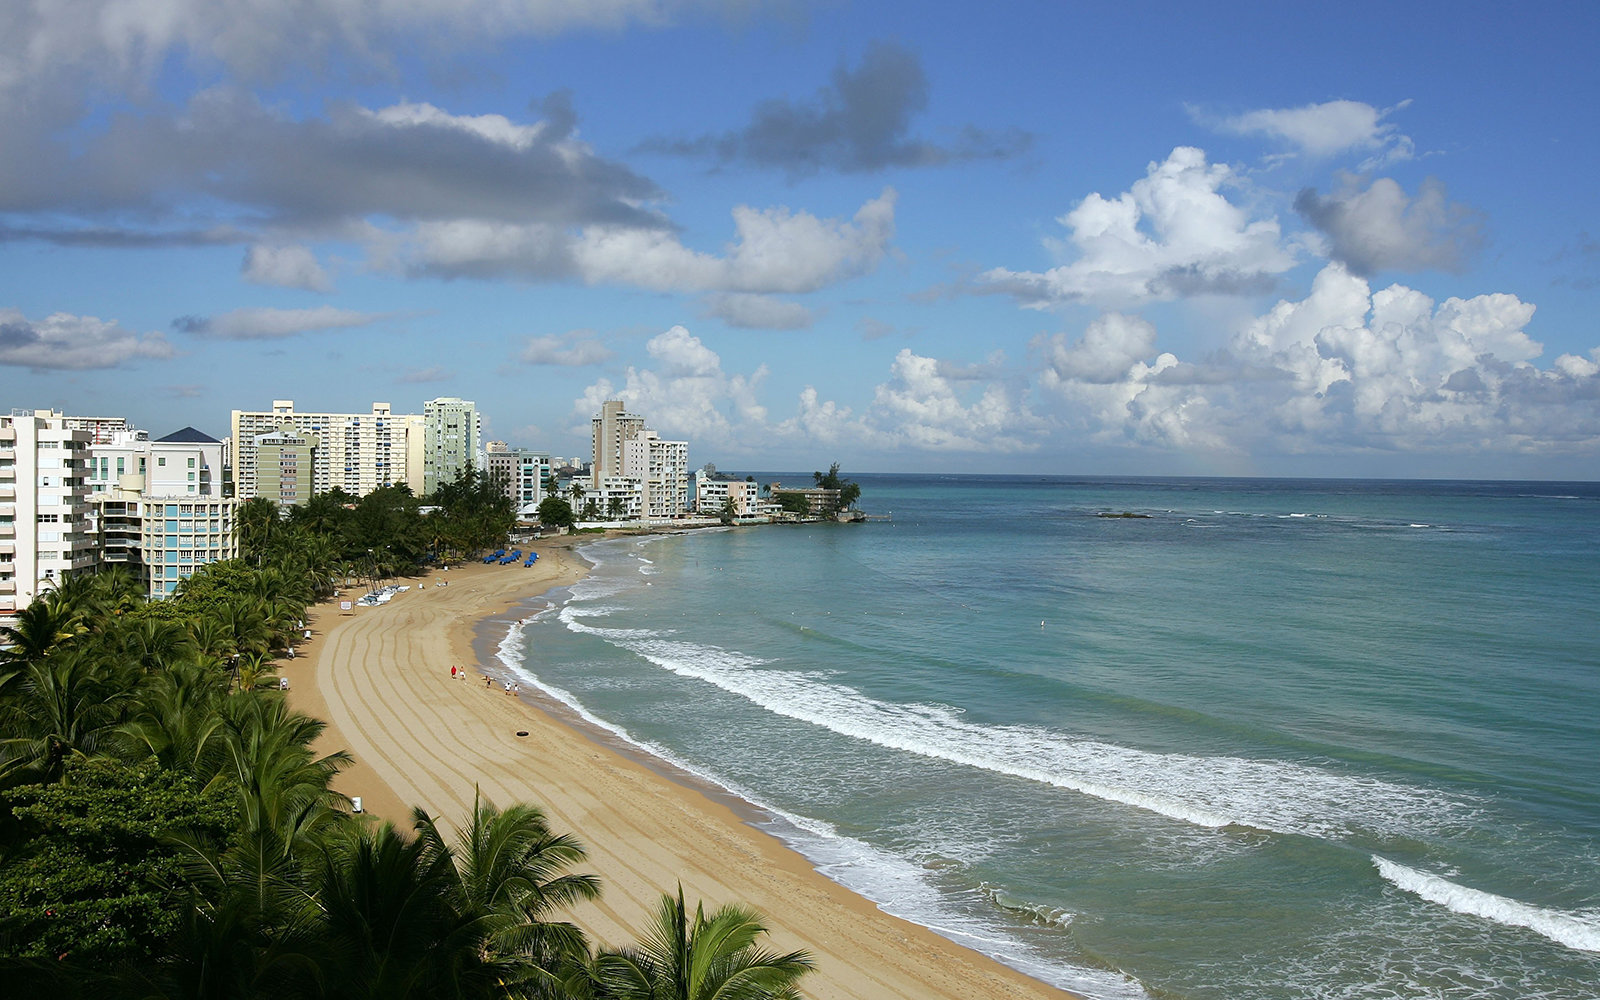 SAN JUAN, PUERTO RICO - SEPTEMBER 23:  A view of Isla Verde Beach September 23, 2006 in Old San Juan , Puerto Rico.  (Photo by Al Bello/Getty Images)